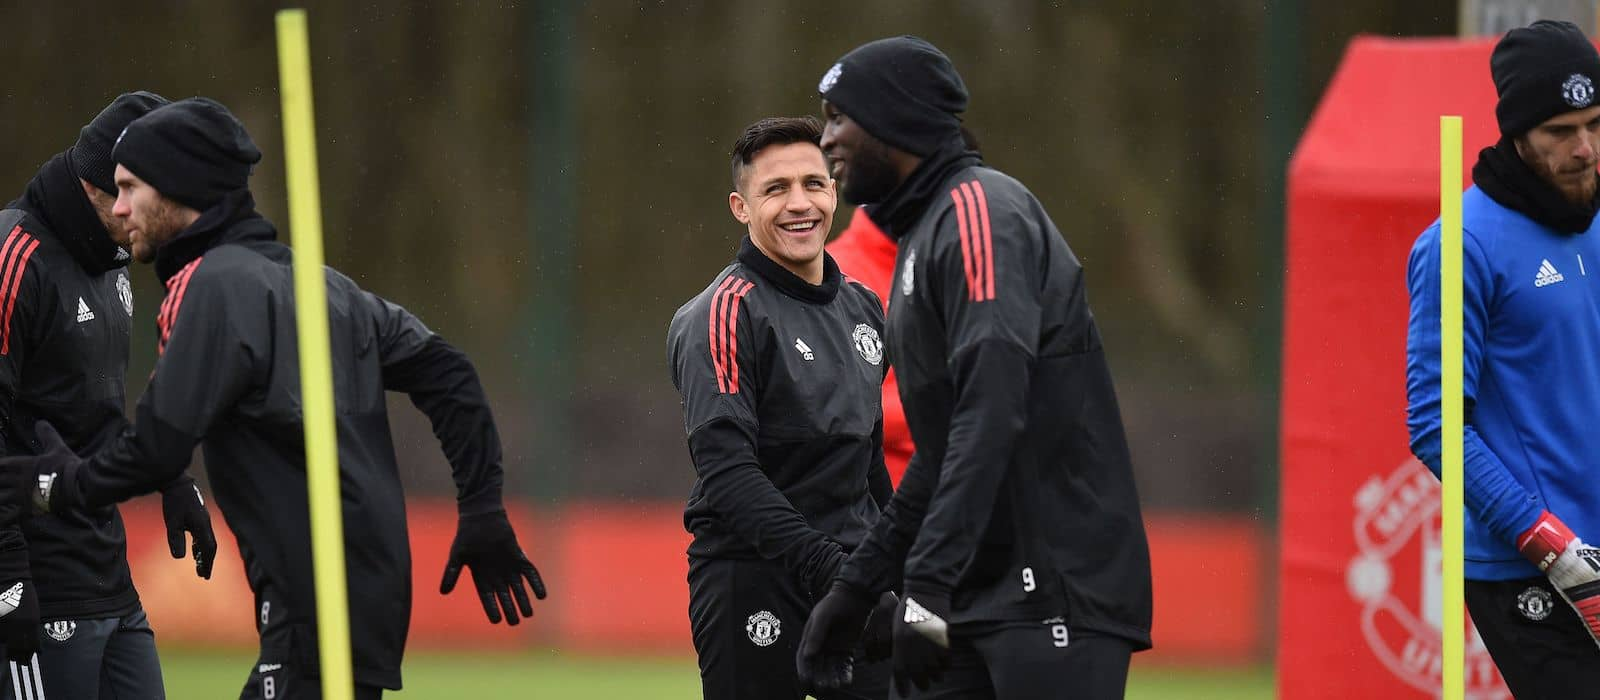 Photo gallery: Manchester United players training ahead of Tottenham Hotspur clash